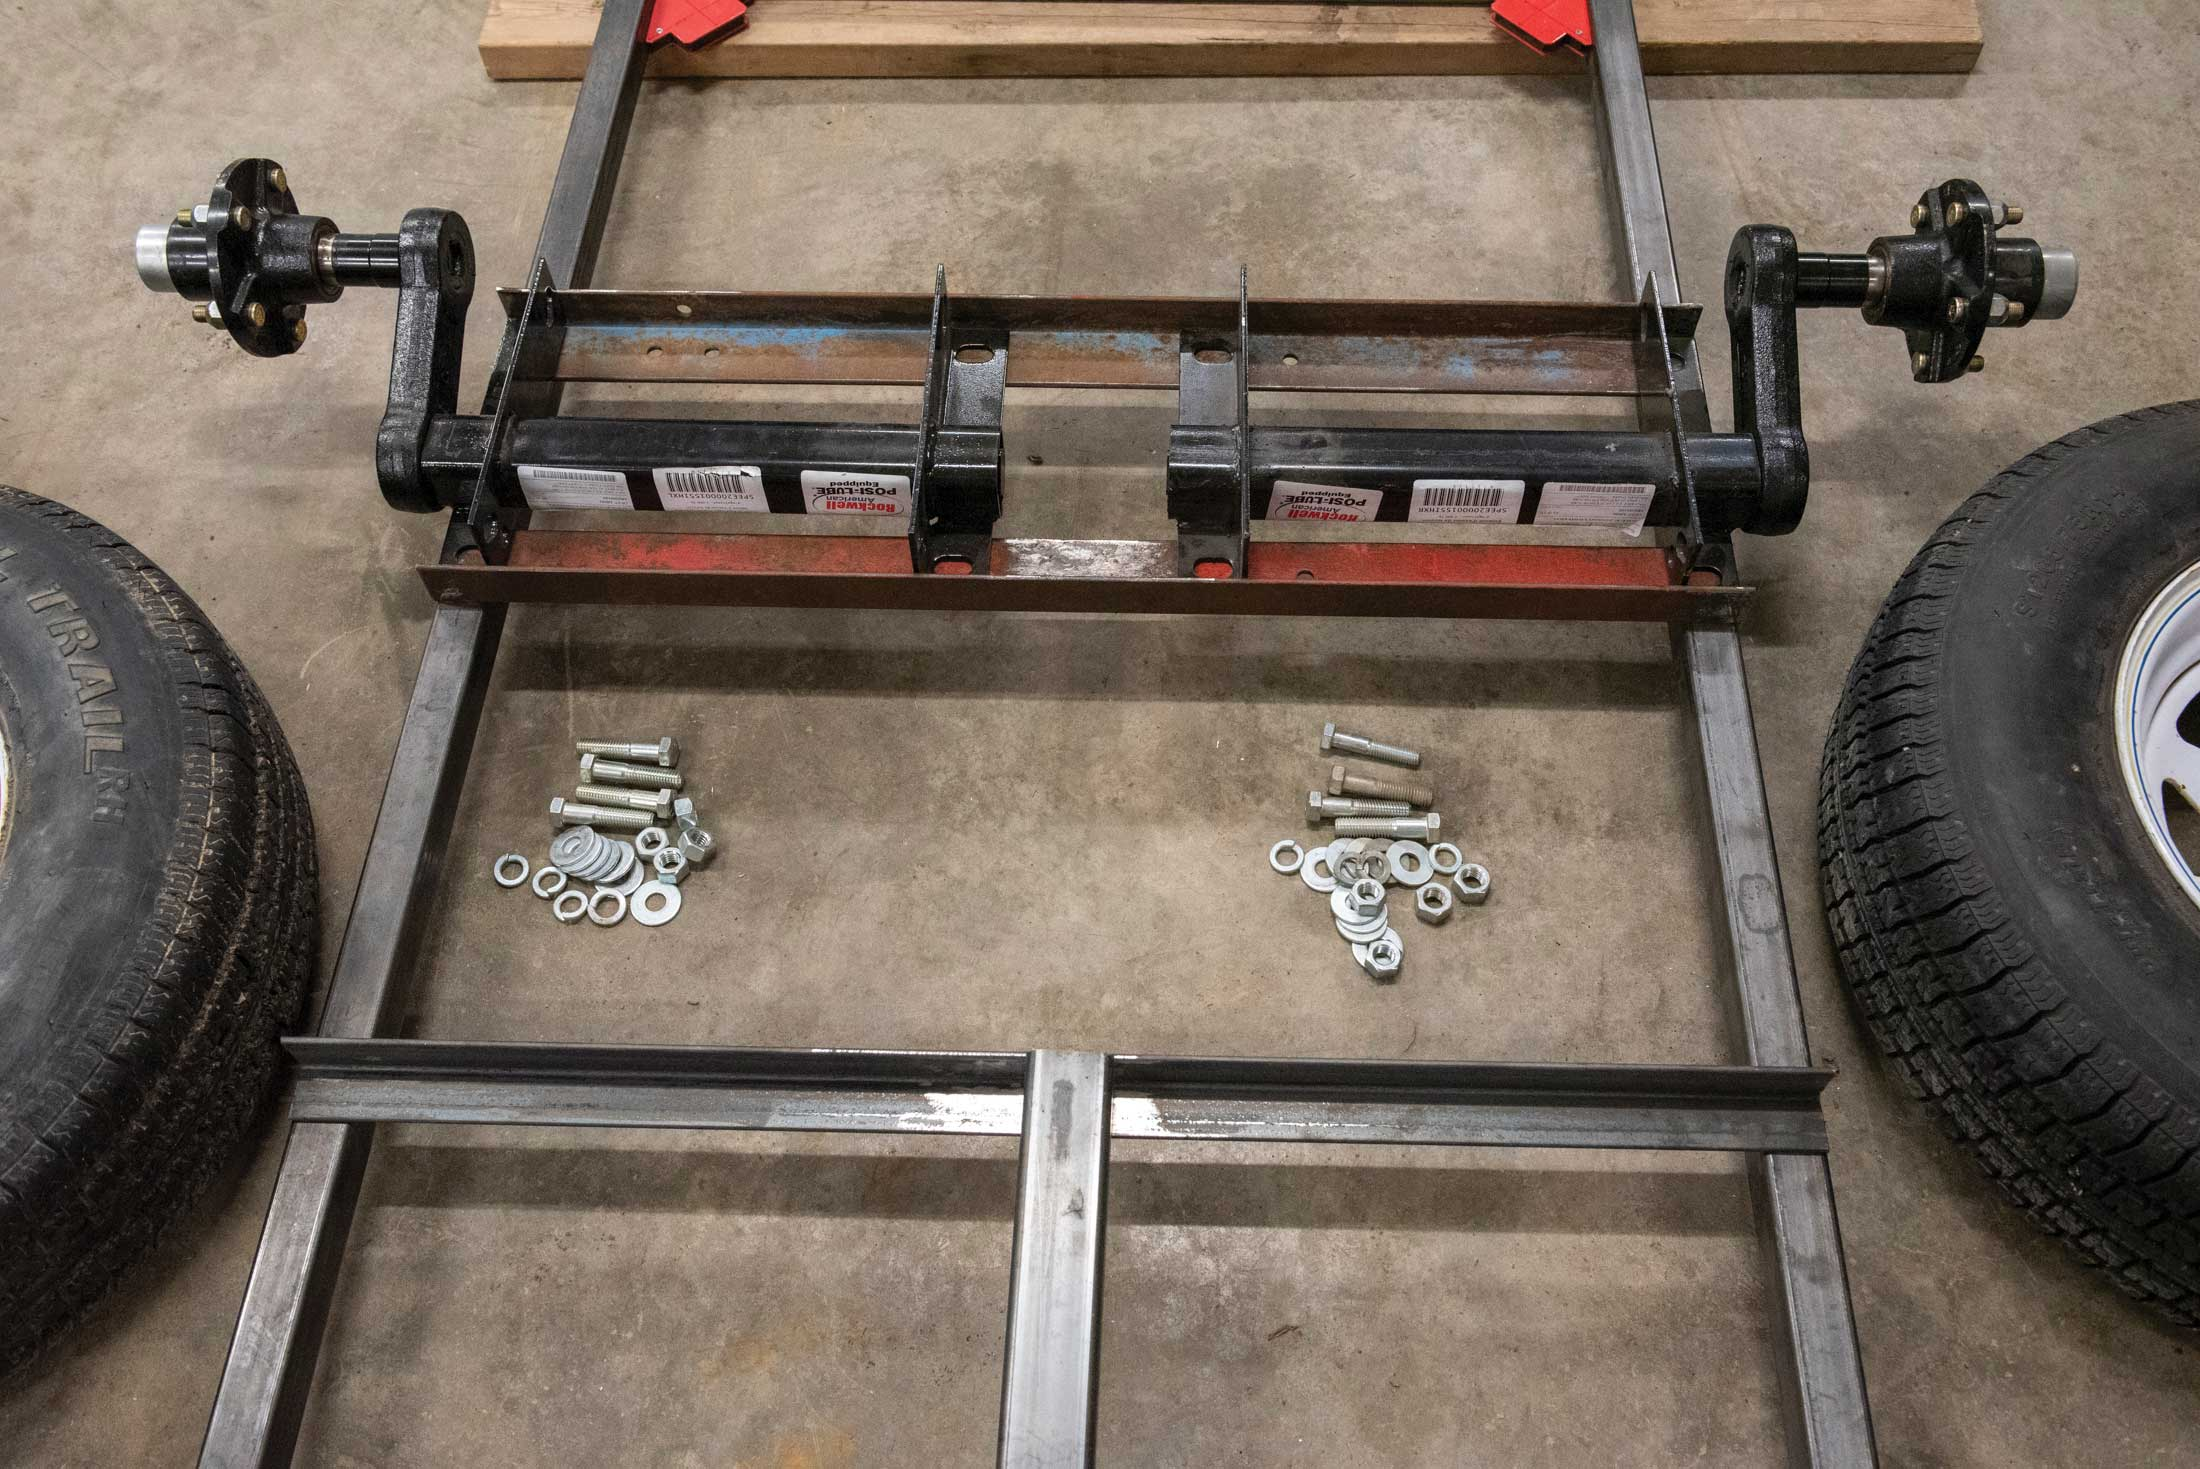 Step 7, assembly: The axel assemblies were bolted onto the frame supports, followed by tire installation.